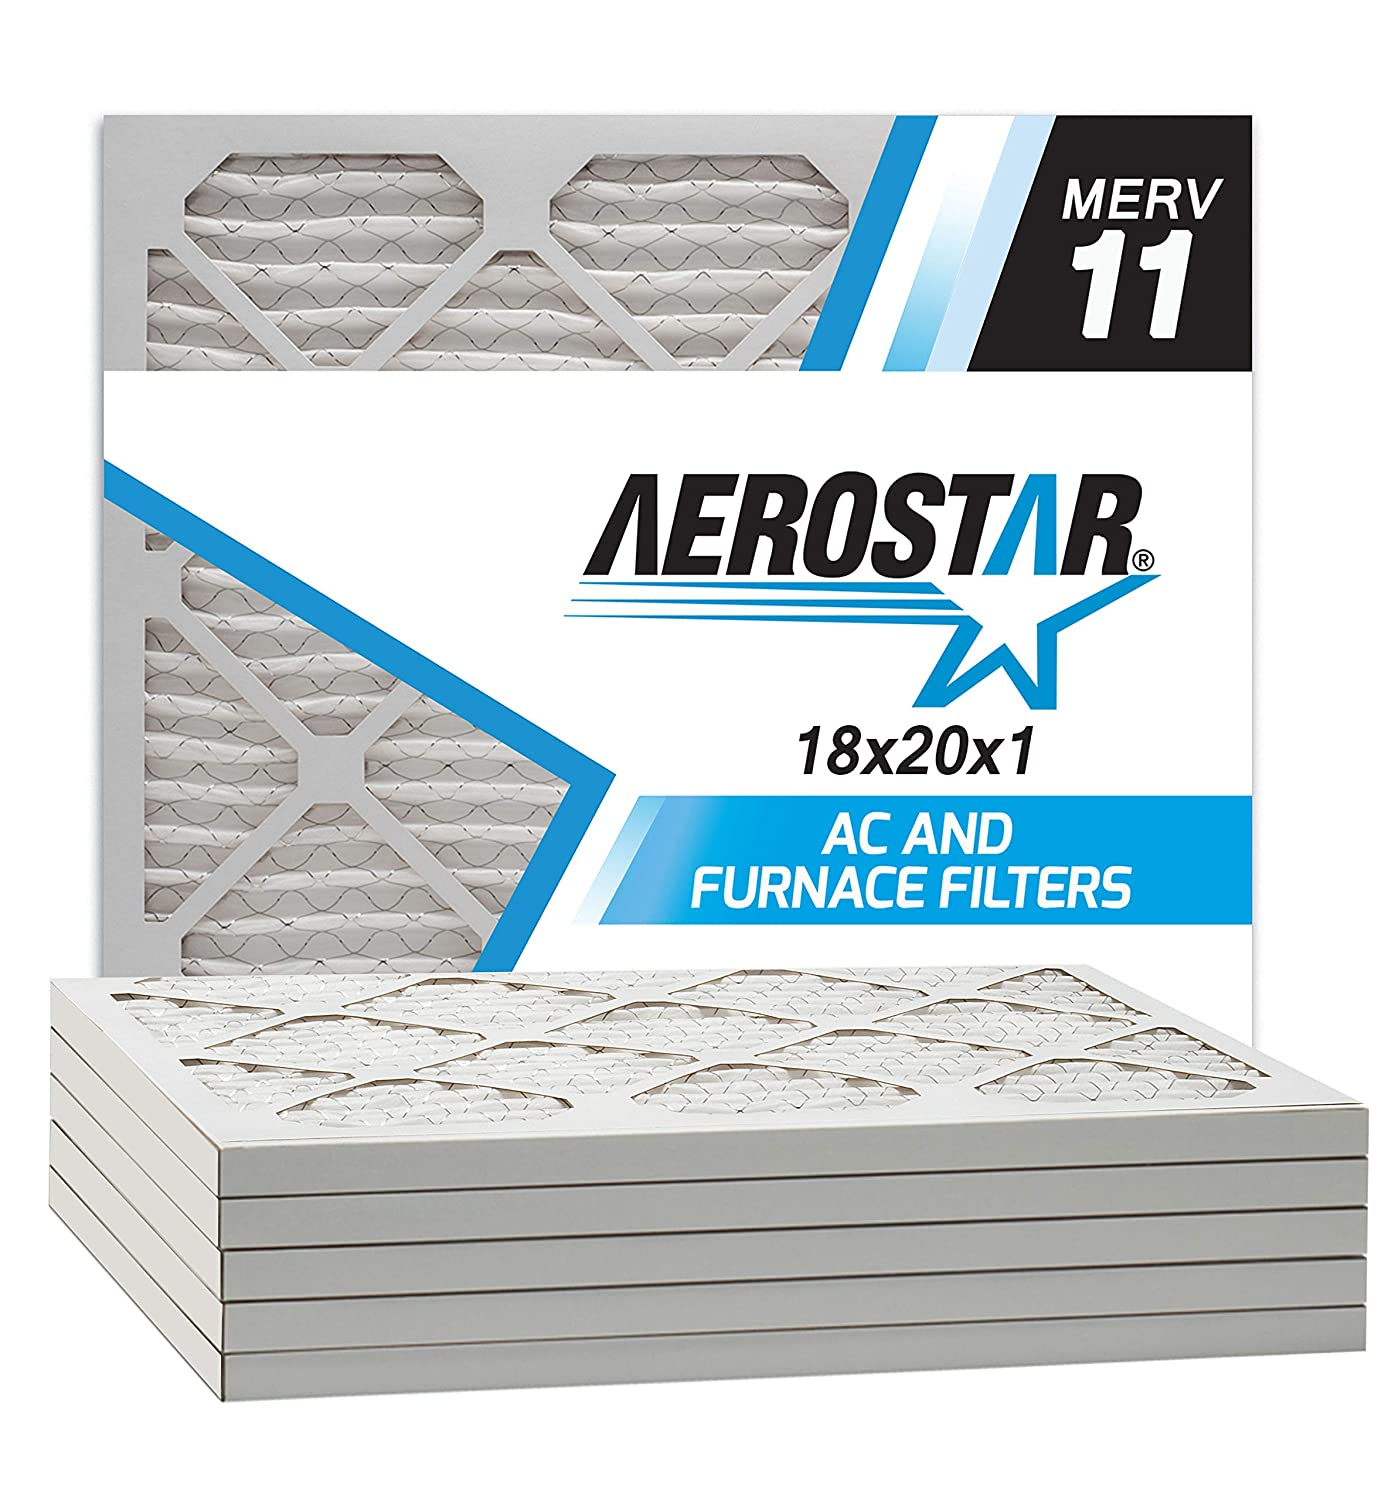 1. Aerostar 18x20x1 MERV 11 Pleated Air Filter, Made in the USA, 6-Pack